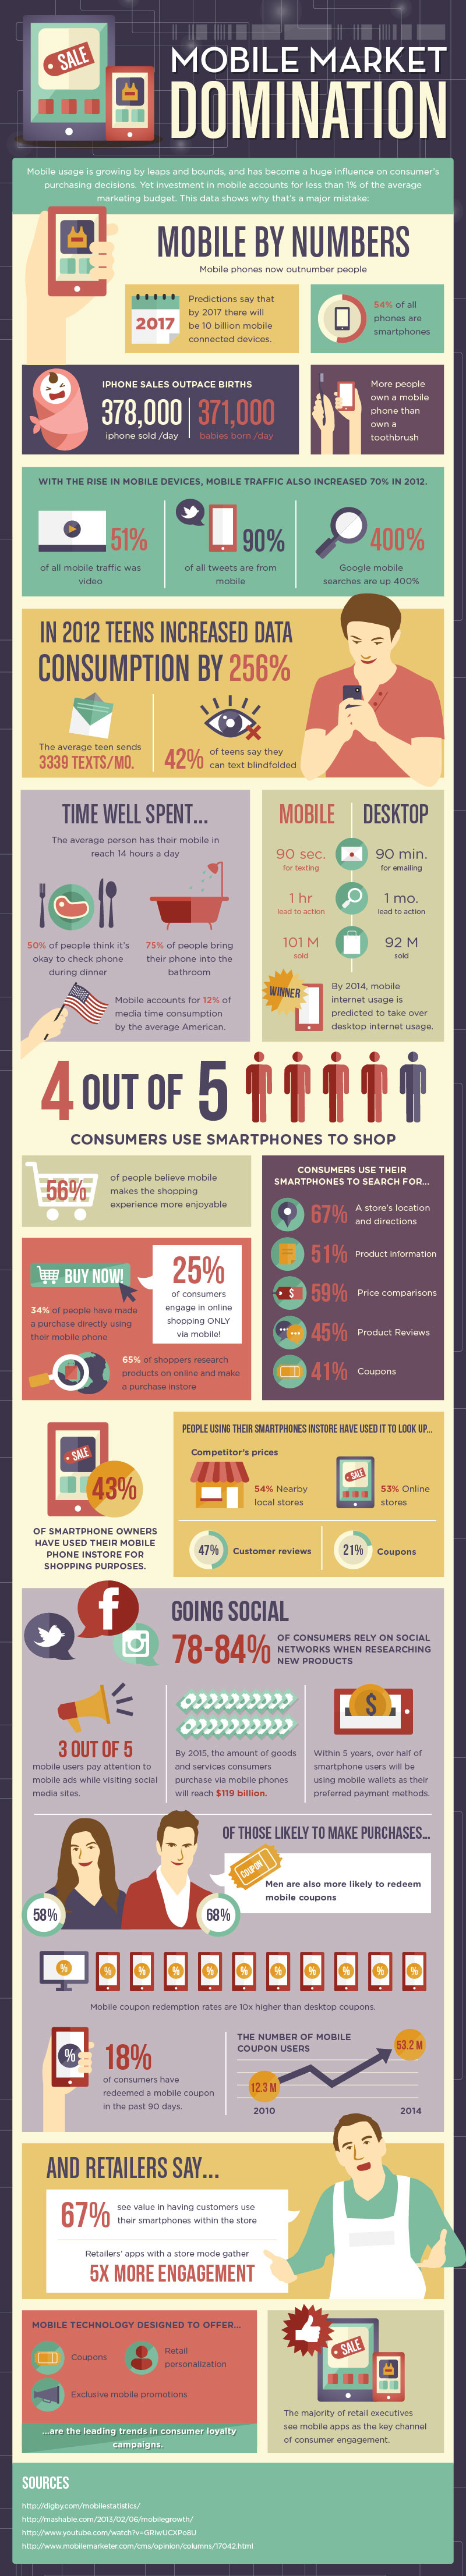 Mobile_Marketing_Domination_Info_Graphic